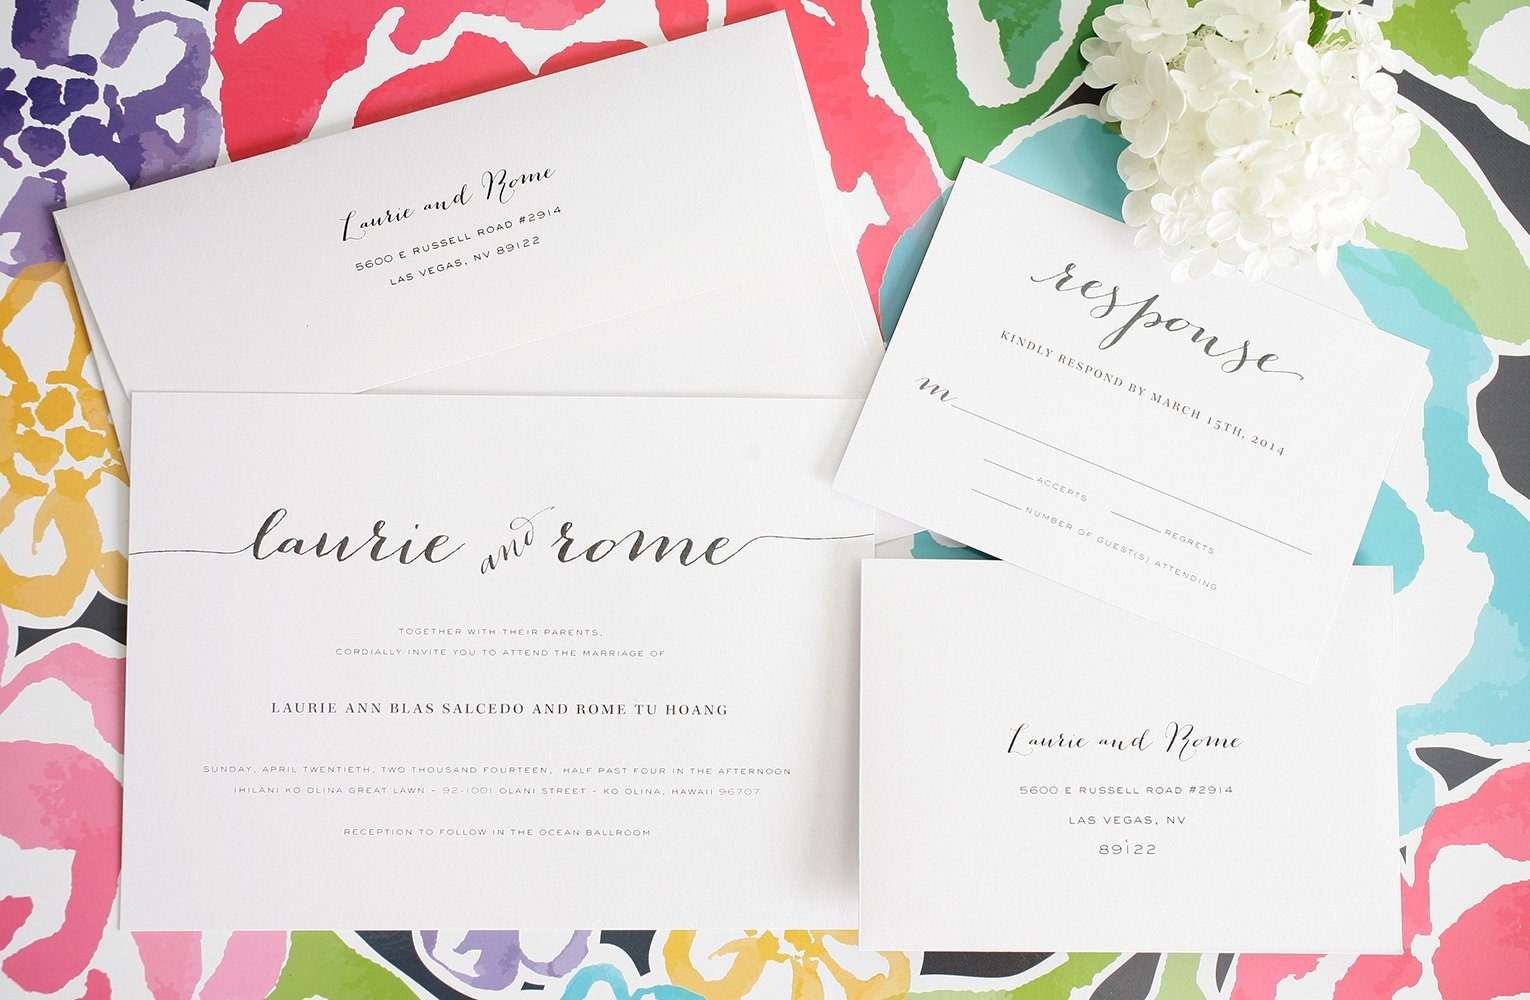 Rustic Wedding Invitations with Big Script